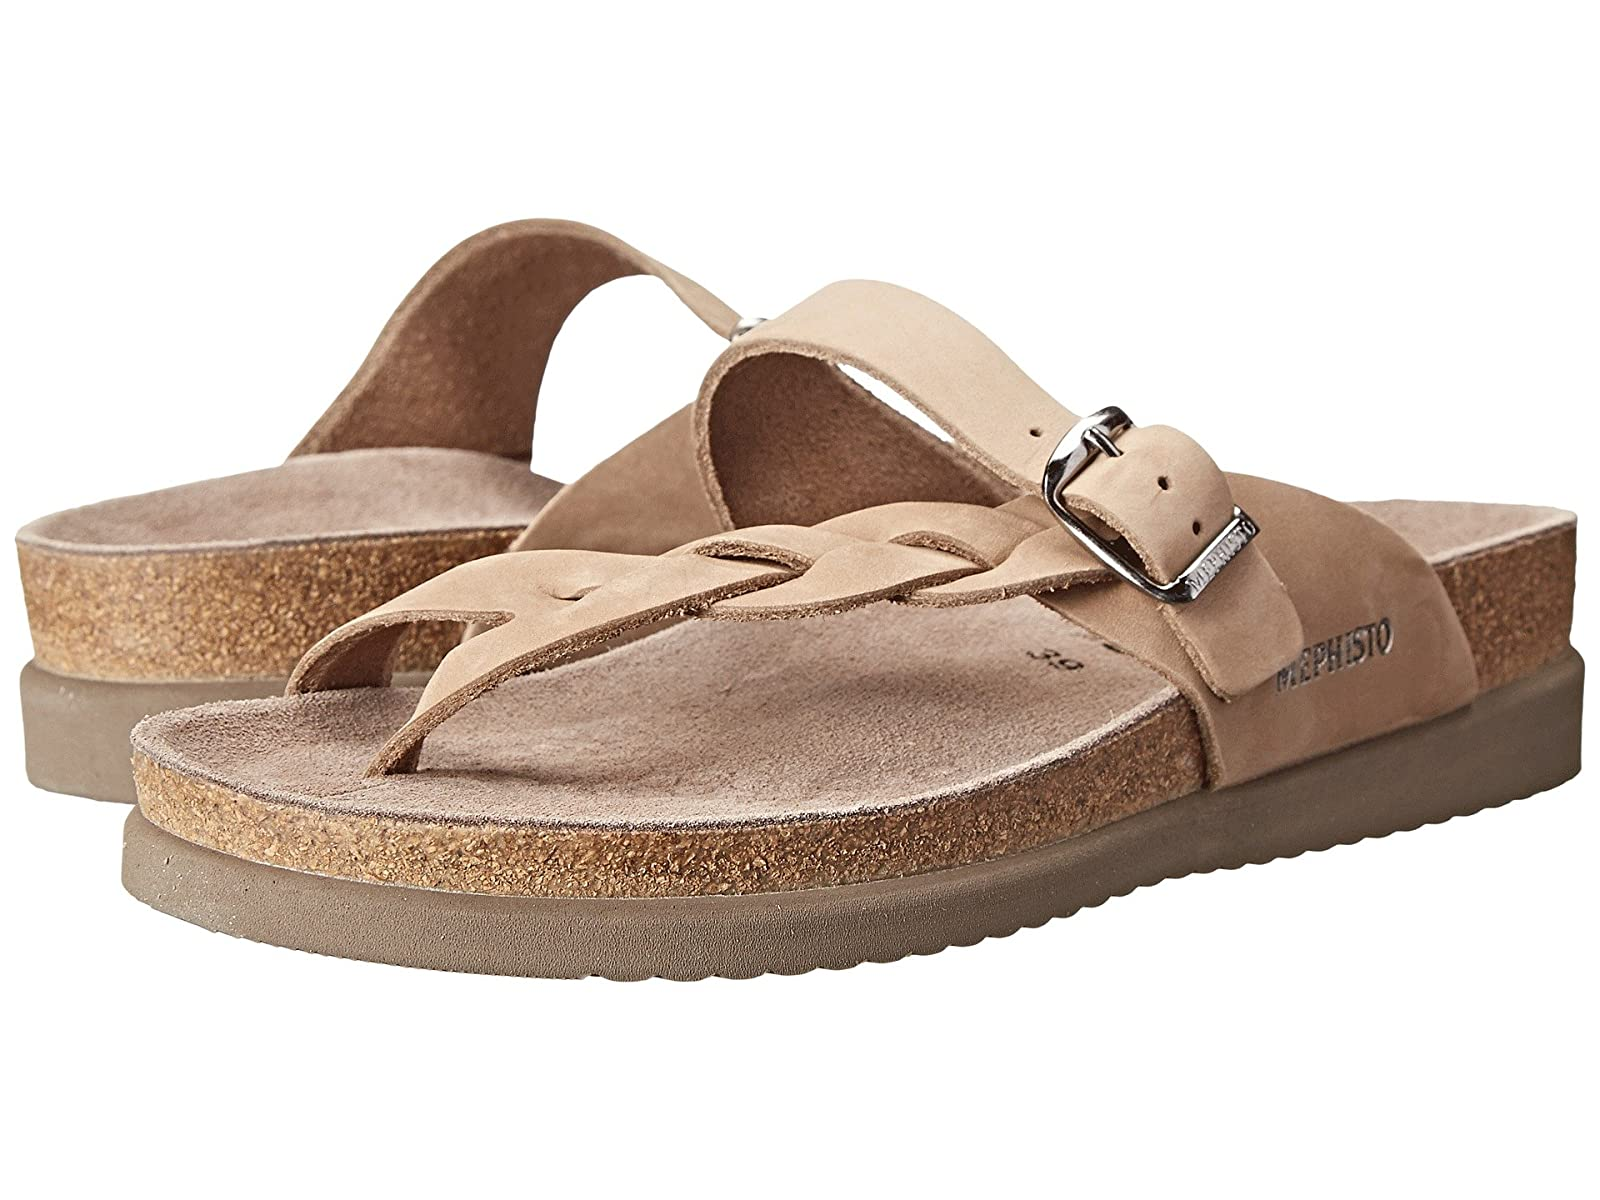 Mephisto Helen TwistAtmospheric grades have affordable shoes